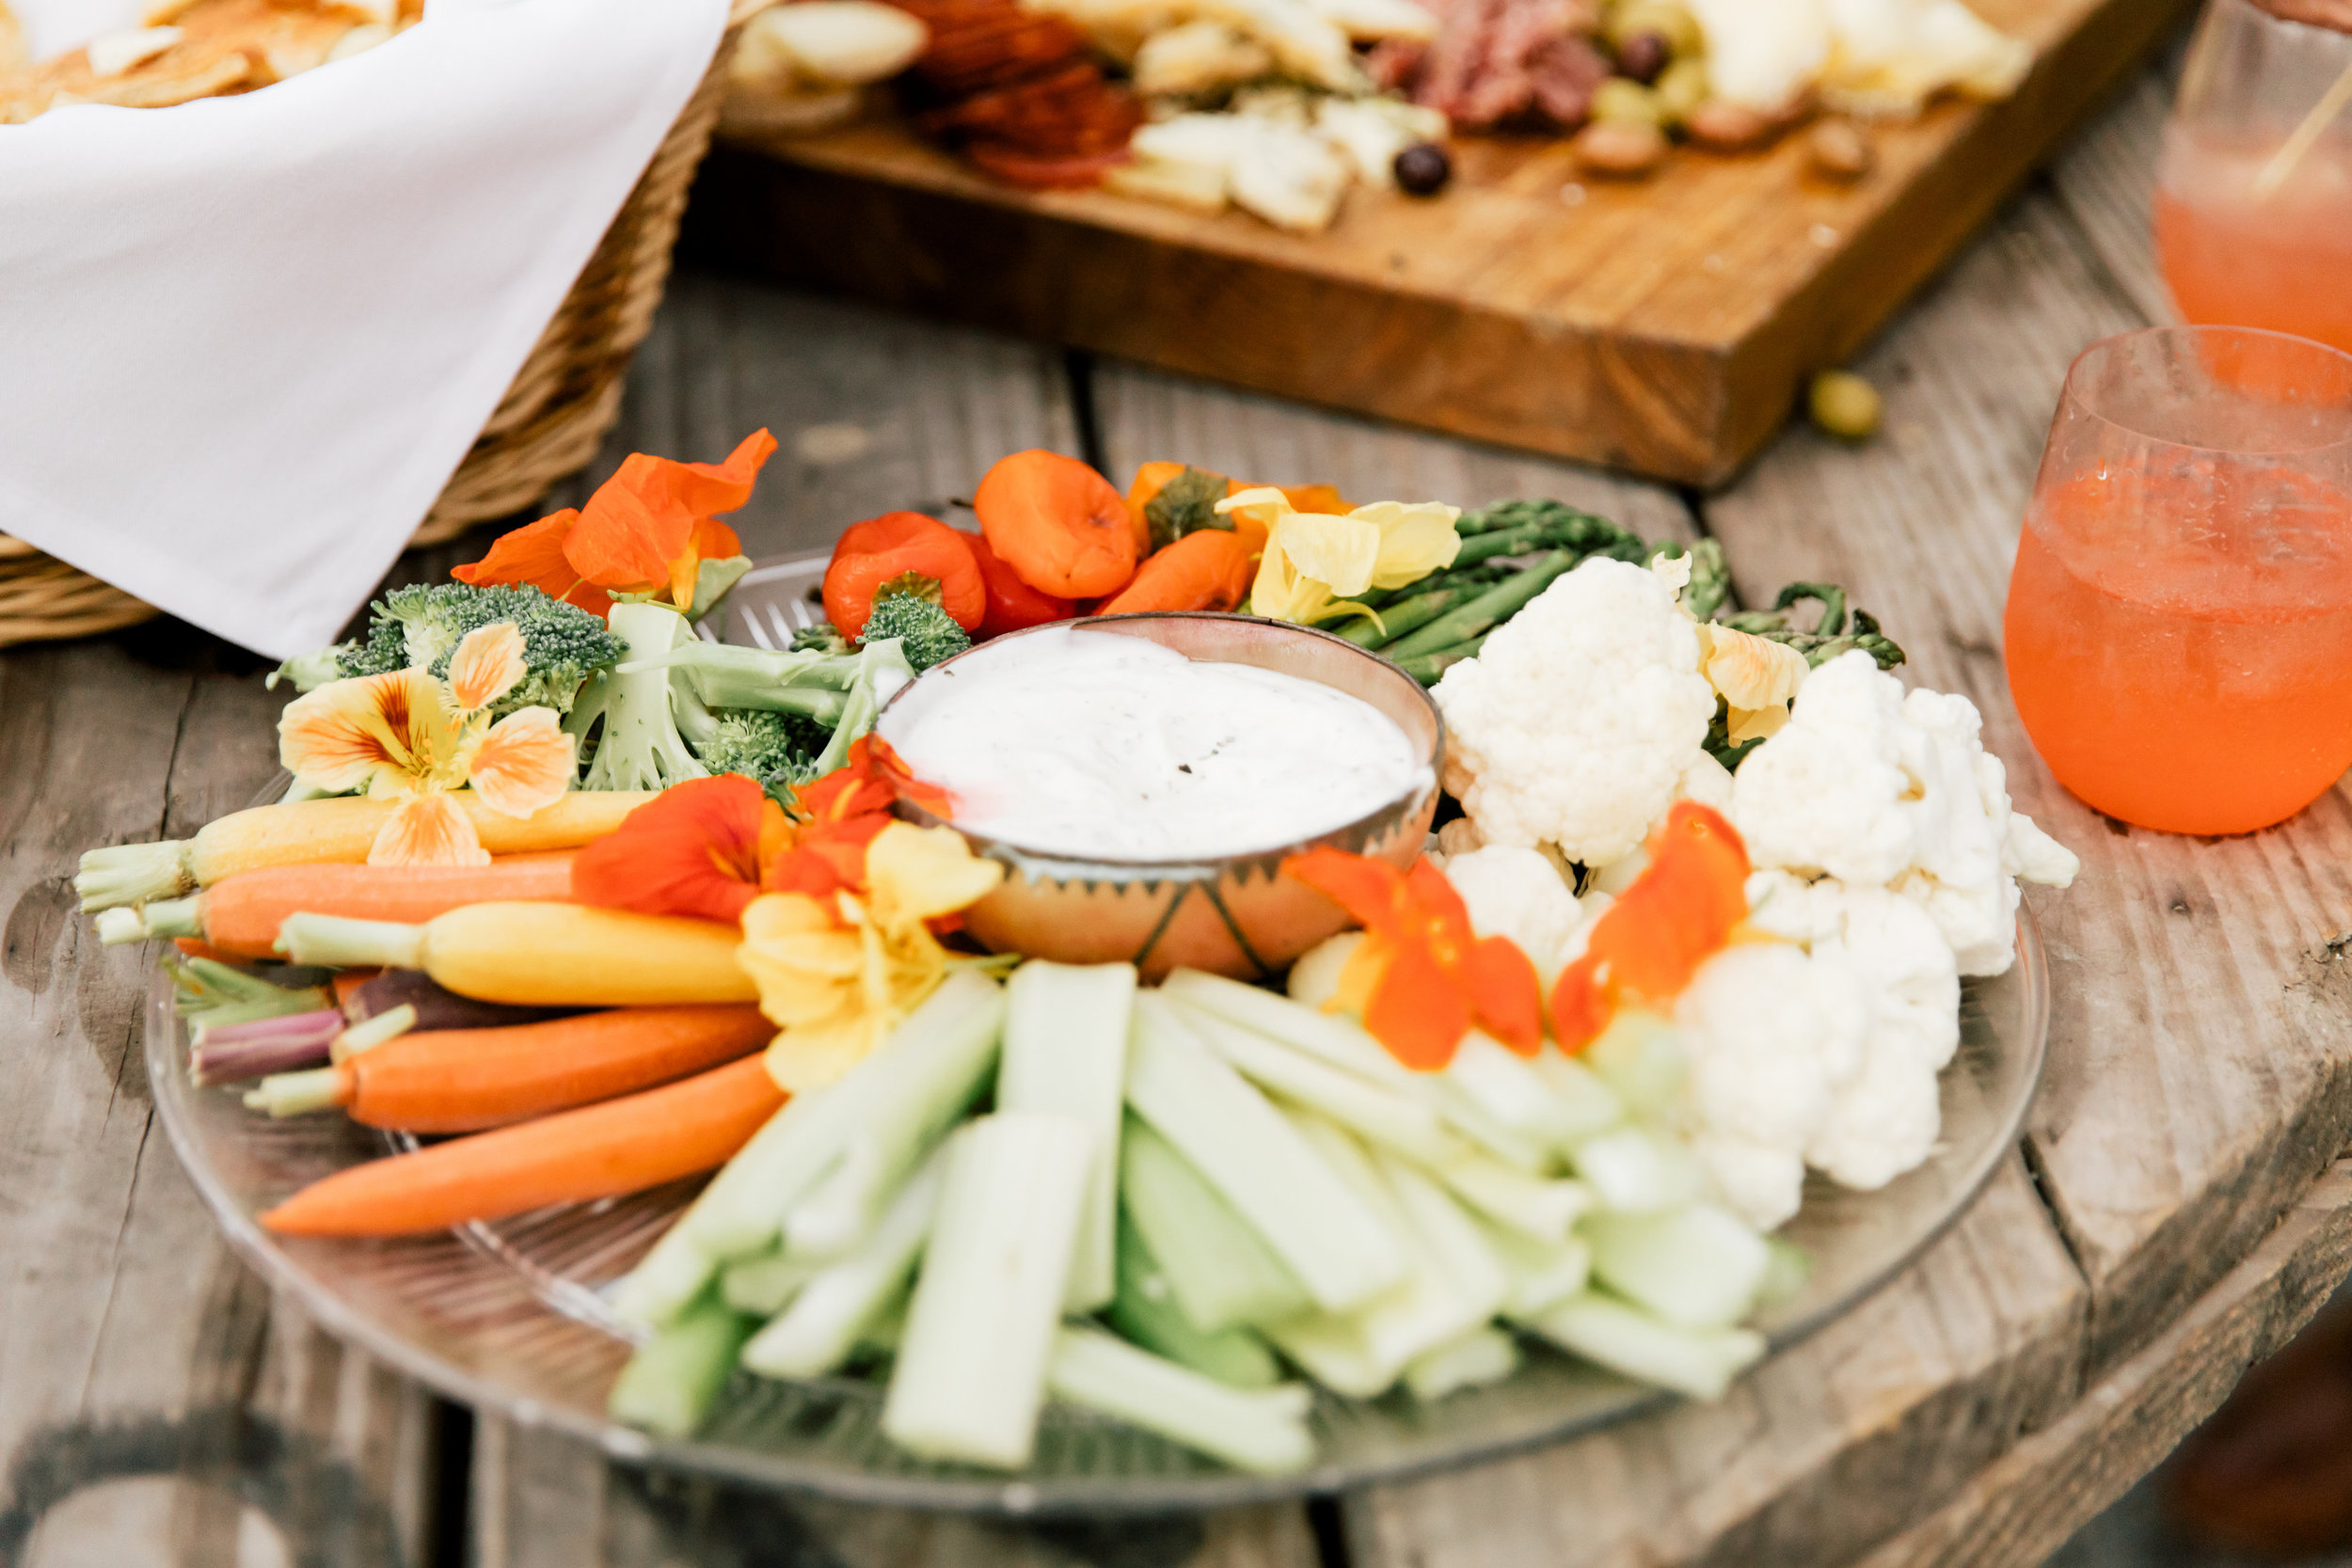 Crudite and canapes